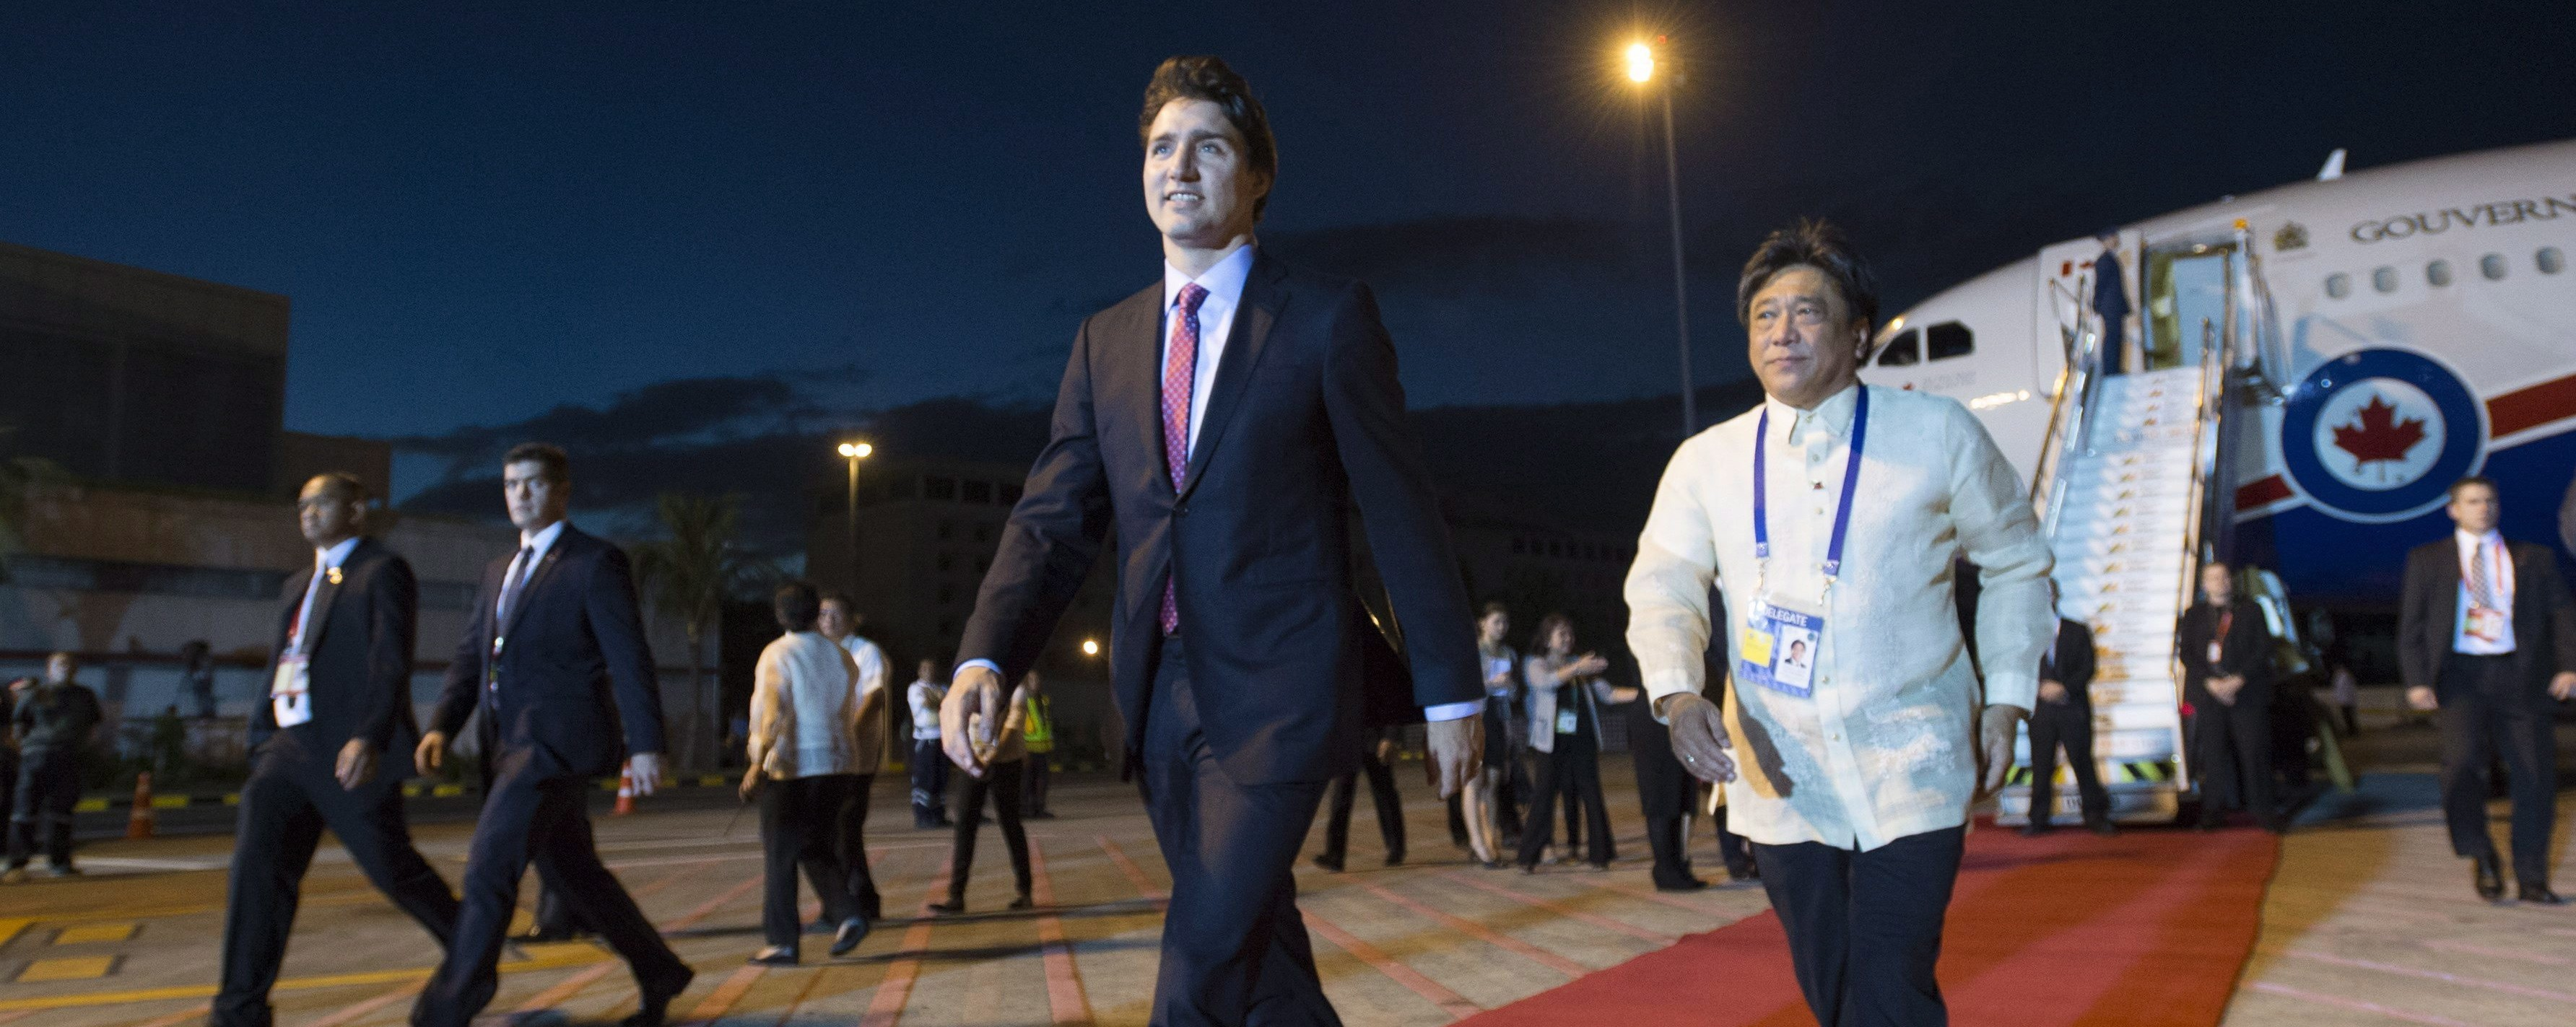 Justin Trudeau Steps Off a Plane in the Philippines and Into a Pile of Canadian Garbage